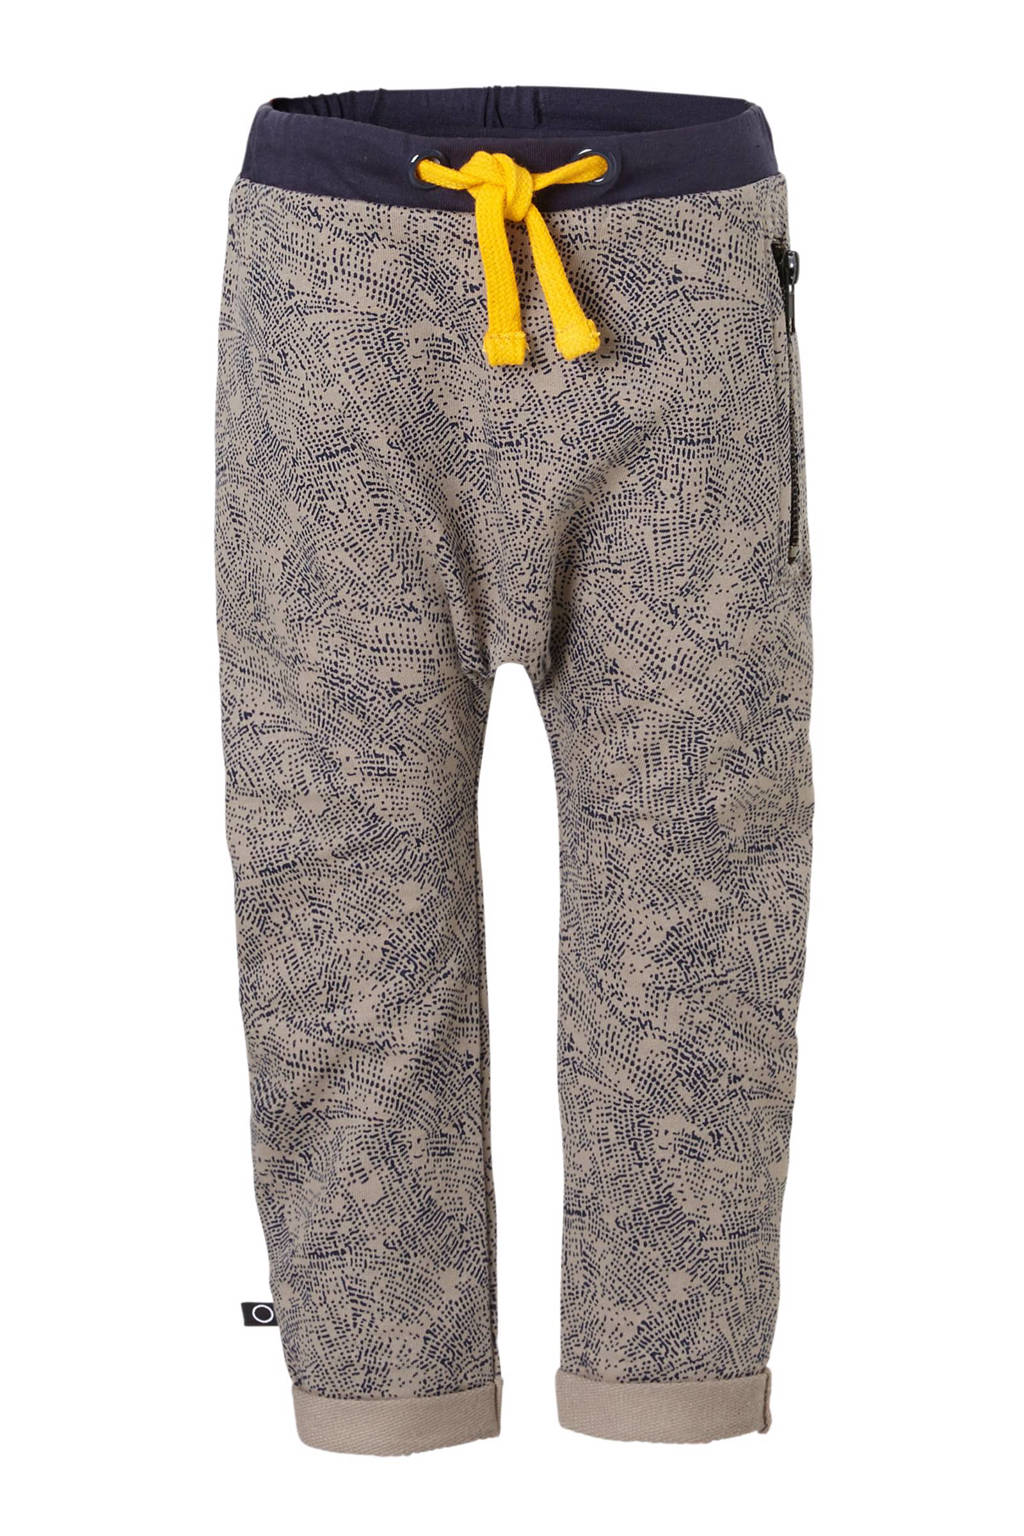 nOeser   sweatpants Pim met all over print grijs, Grijs/donkerblauw